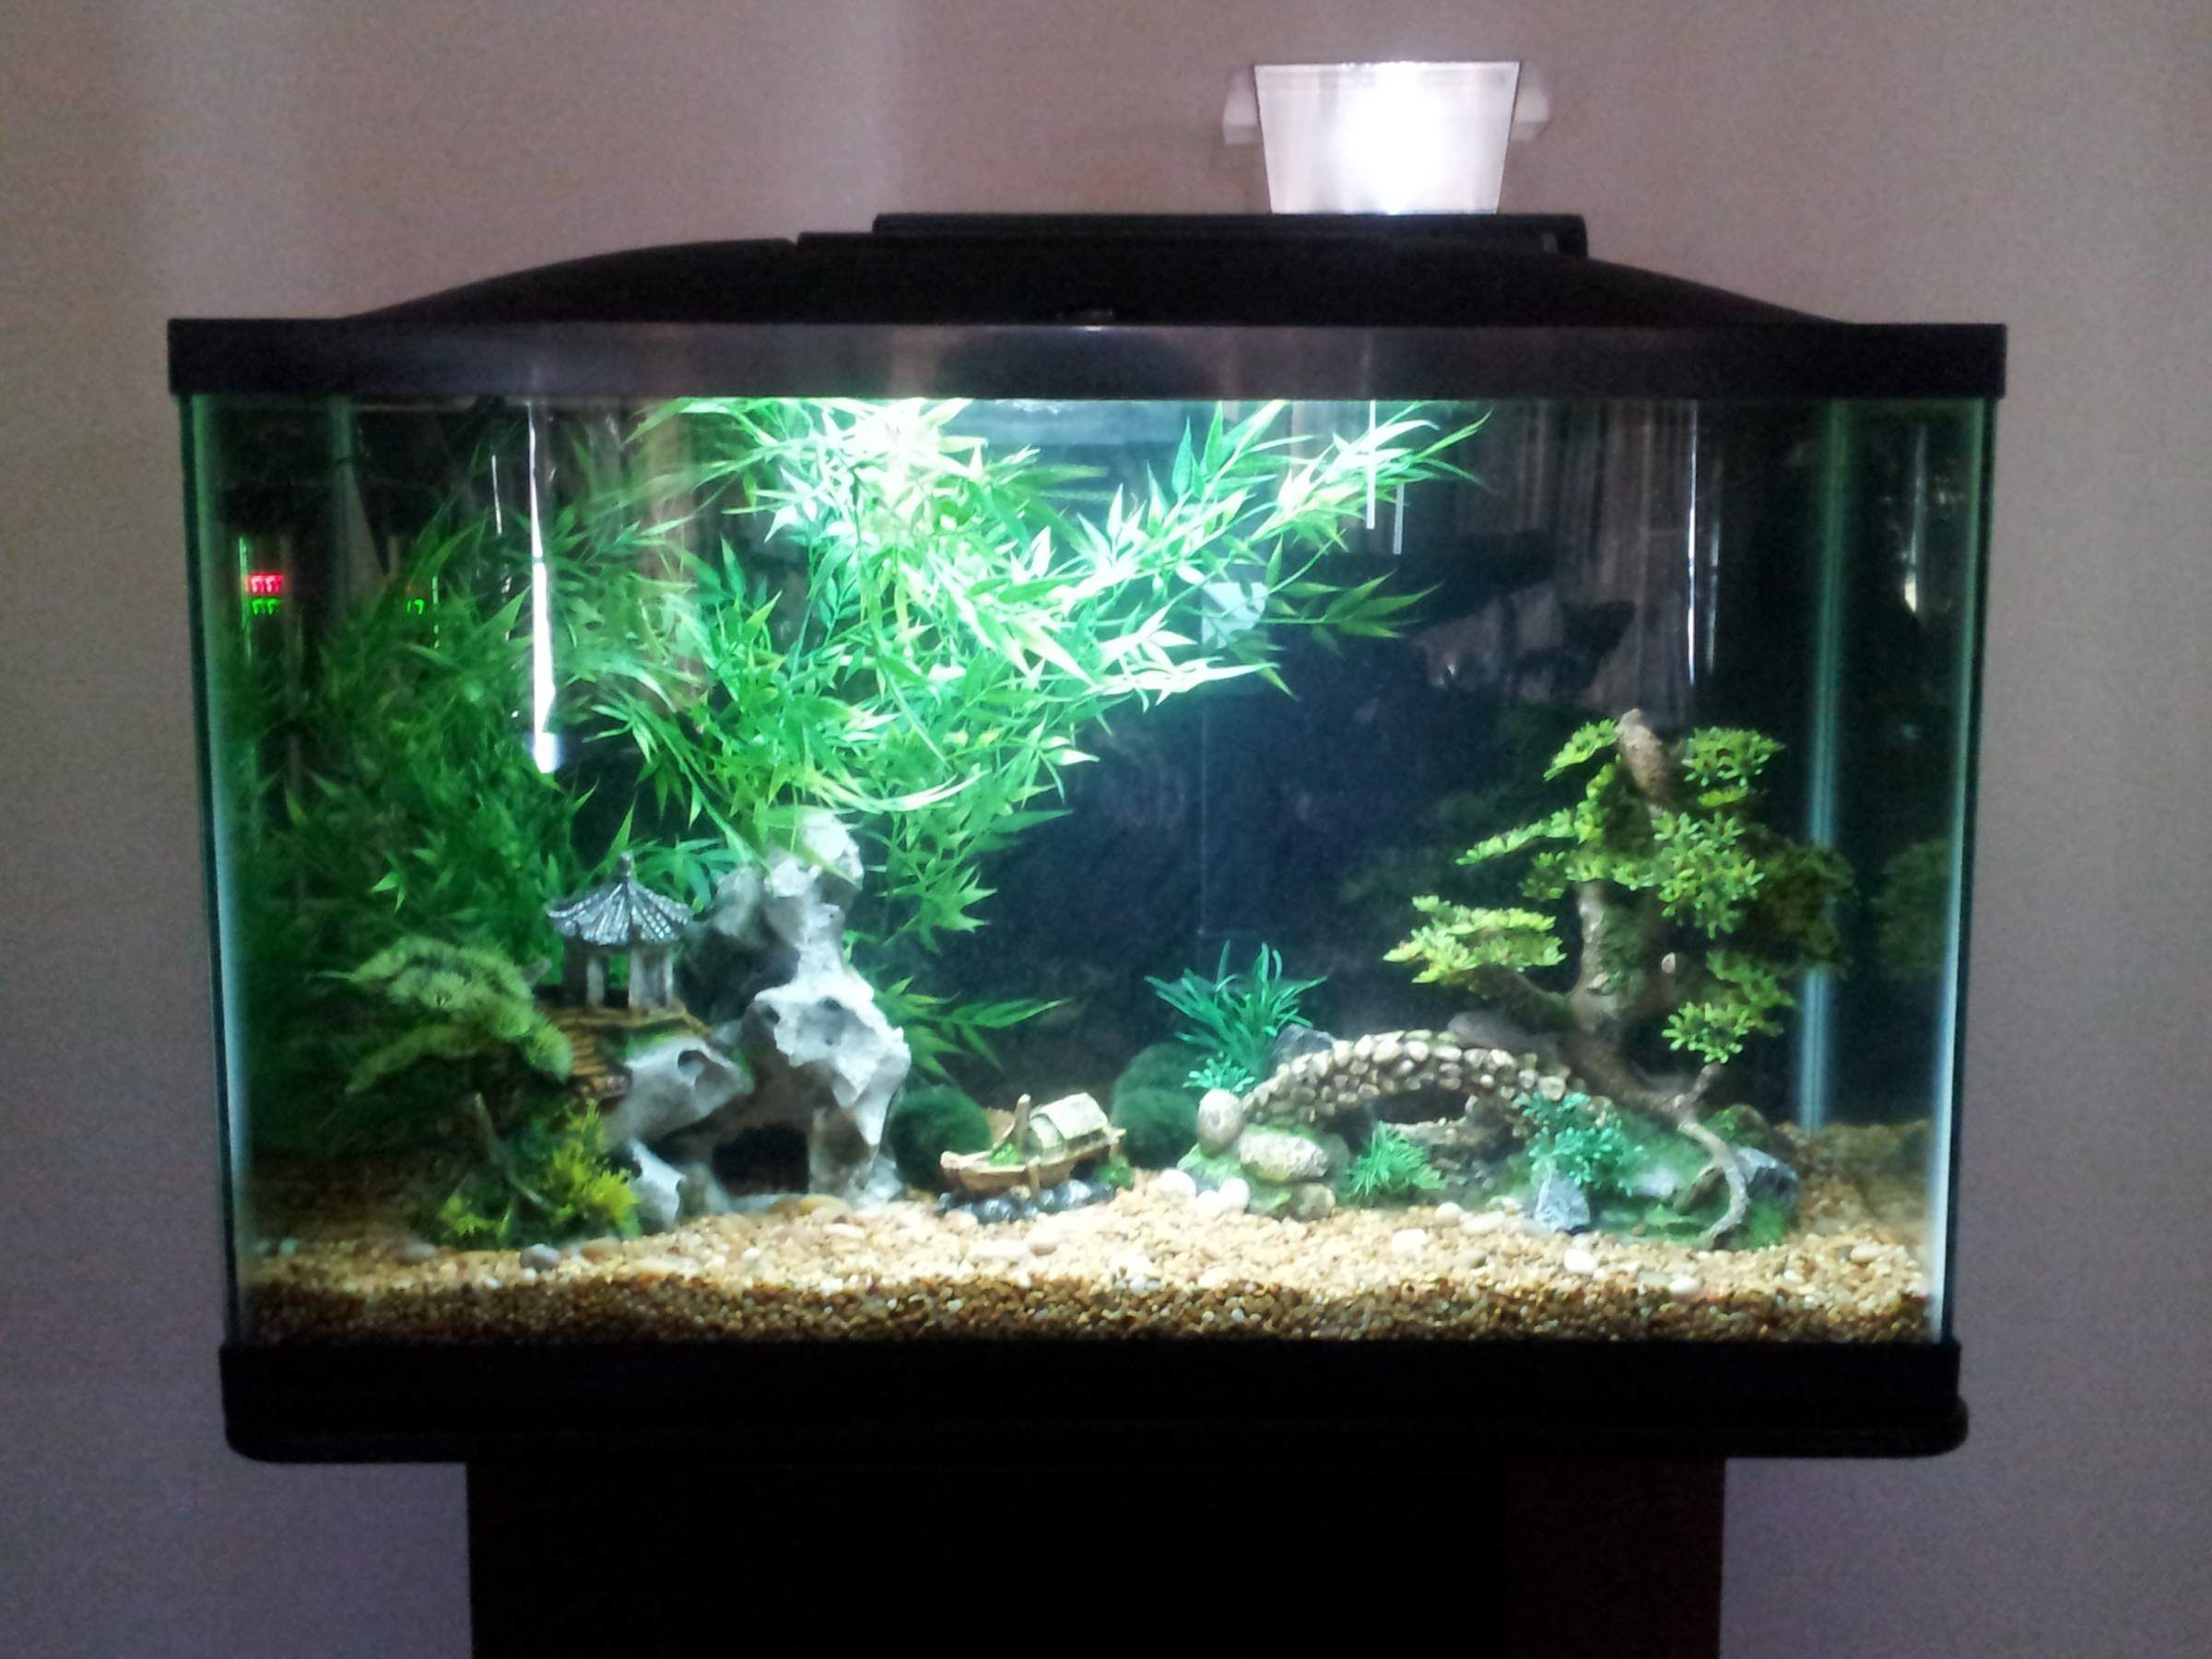 Freshwater fish aquarium accessories - Any Ideas I Built A Diy Background A Castle With Terrafuna Stuff I Don T Know How To Spell It But Eh The Medieval Theme I Was Imagining Kind